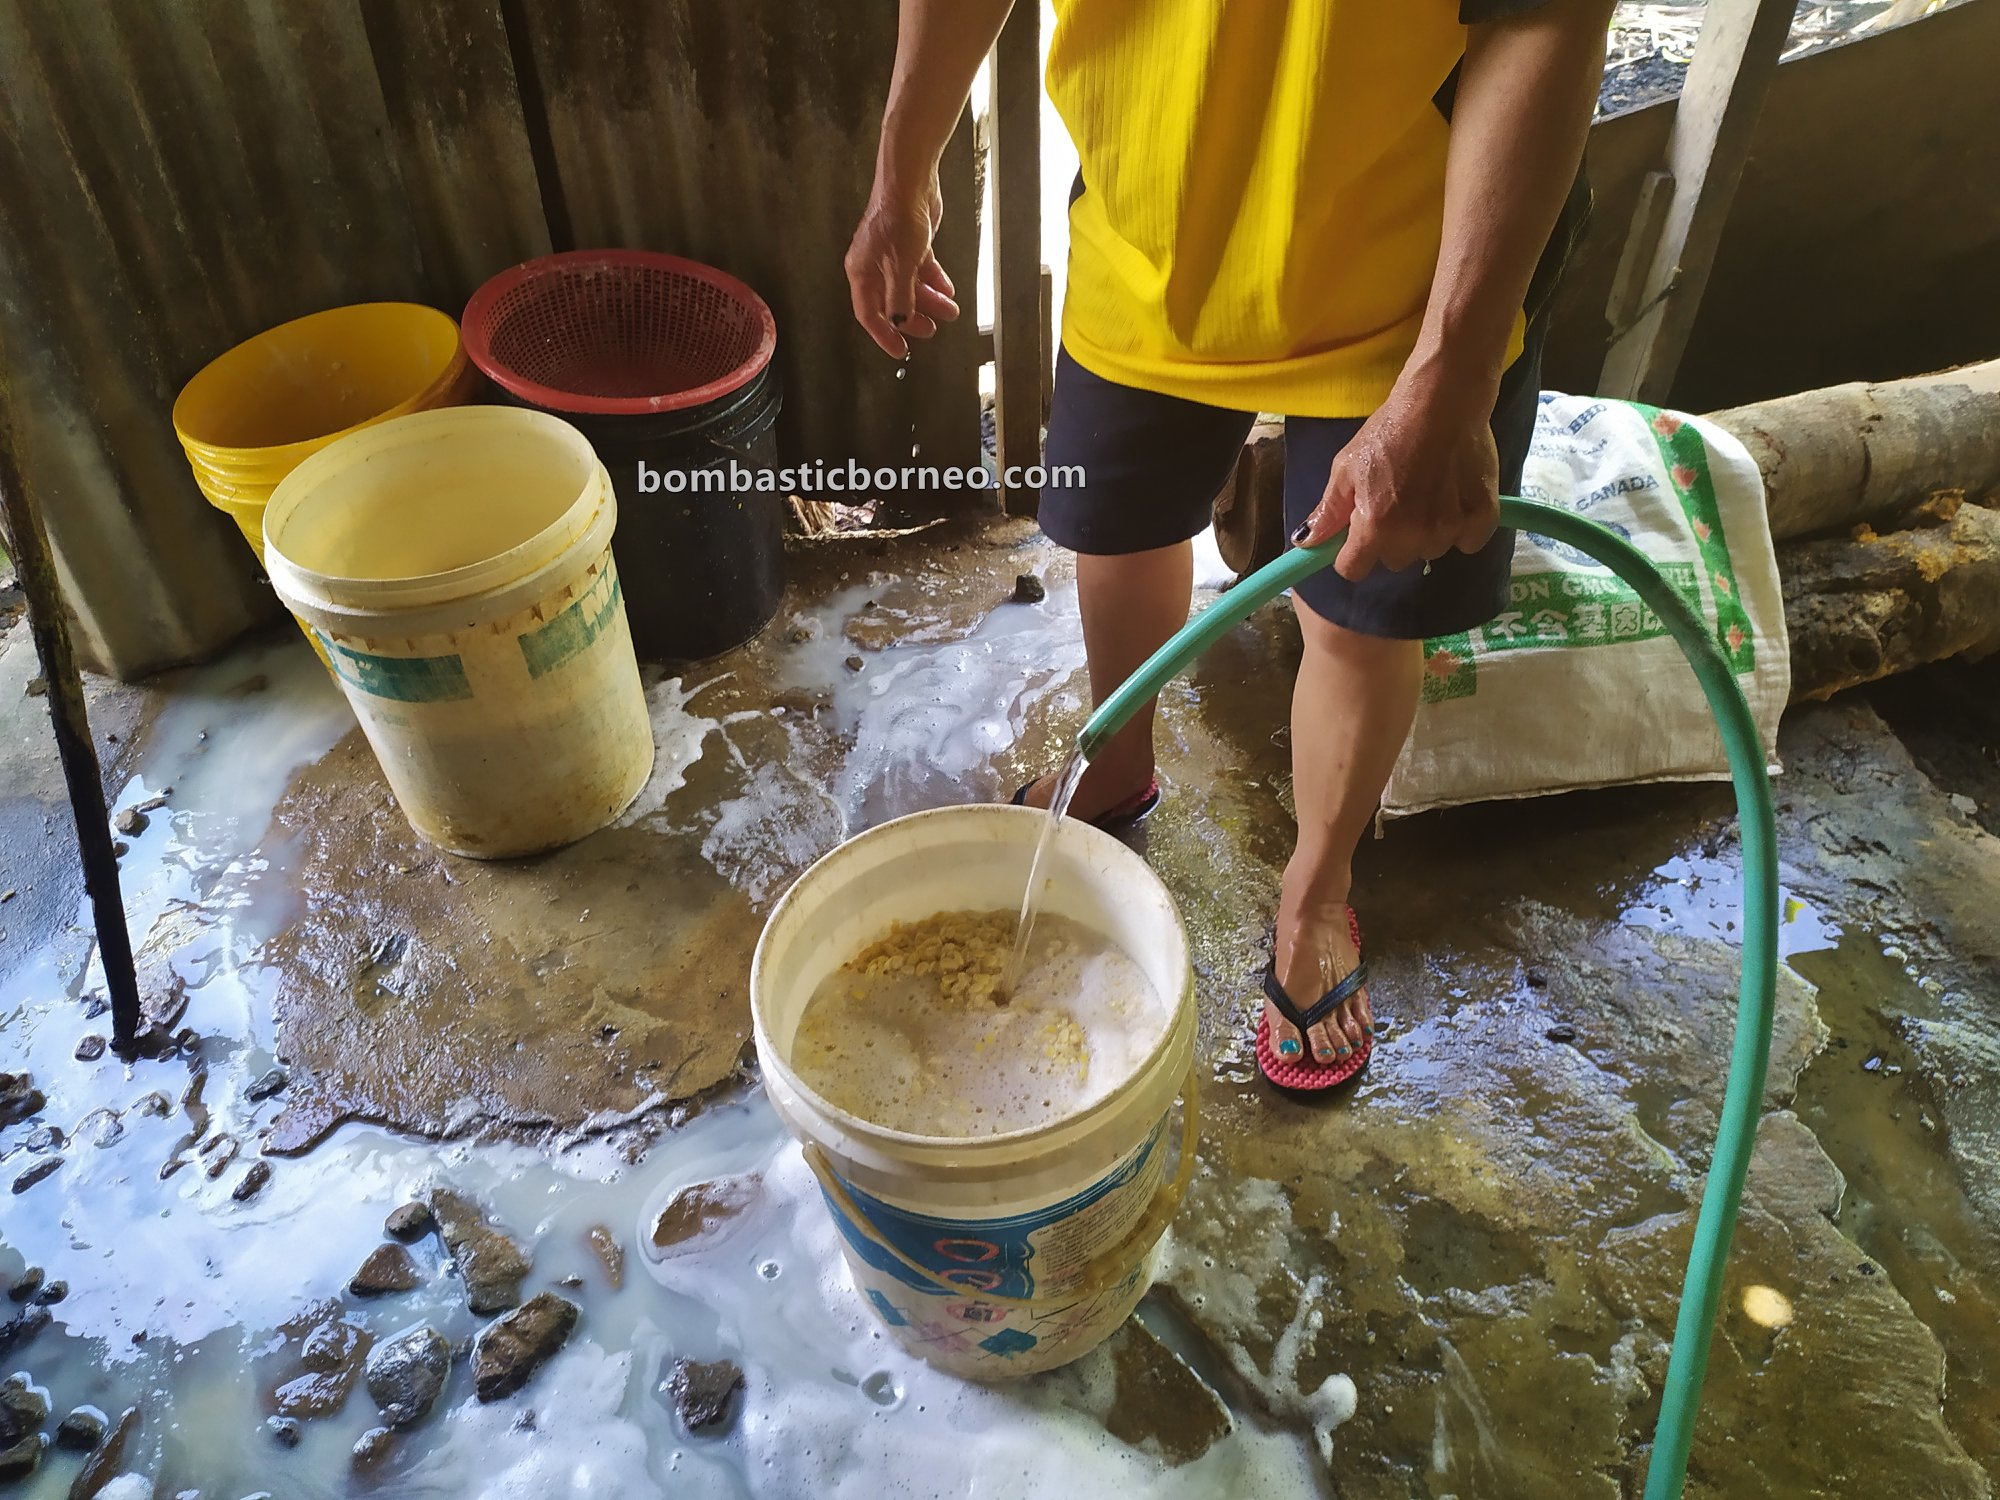 tofu factory, traditional, exploration, backpackers, Interior village, Highlands, native, tribe, Objek wisata, Tourism, travel guide, Cross Border, Borneo, 婆罗洲游踪, 印尼北加里曼丹,